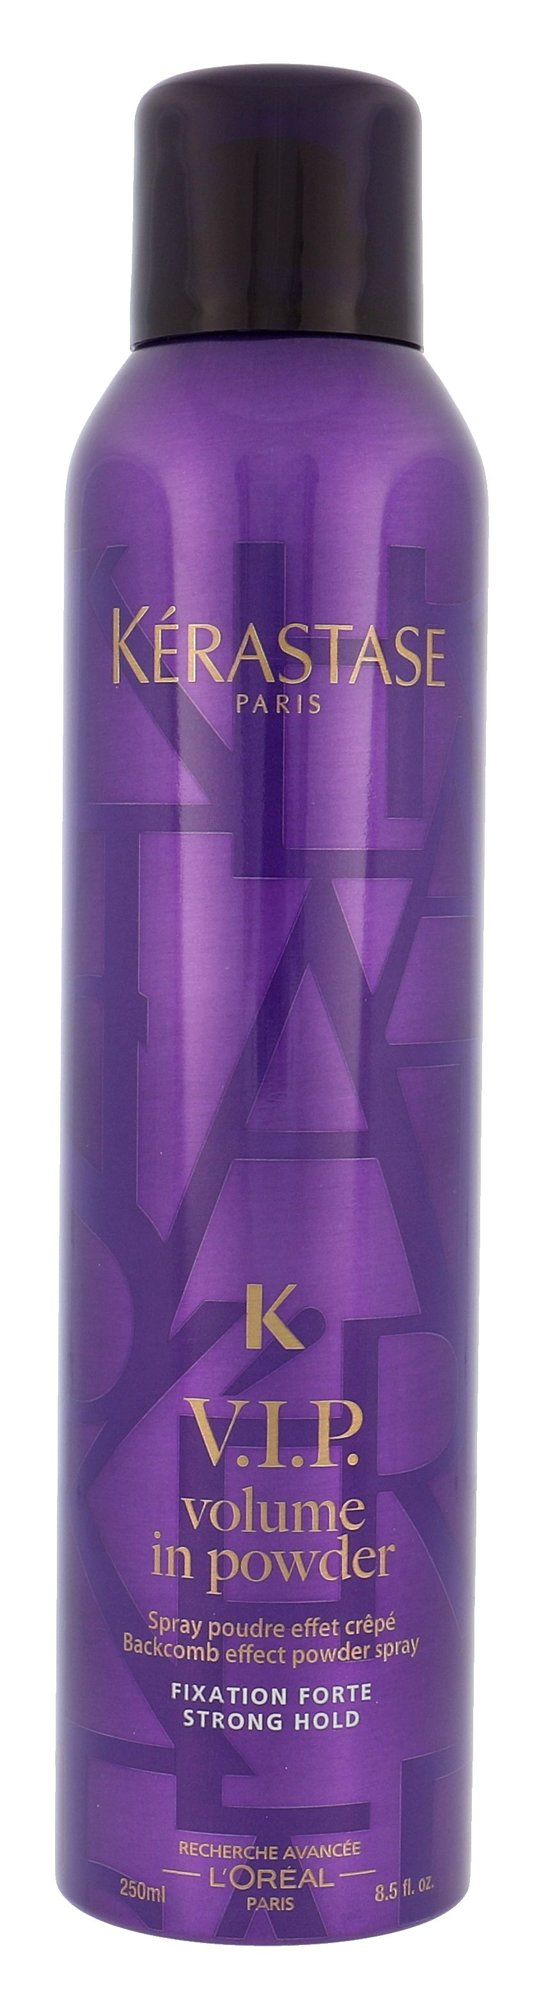 Kérastase VIP Cosmetic 250ml